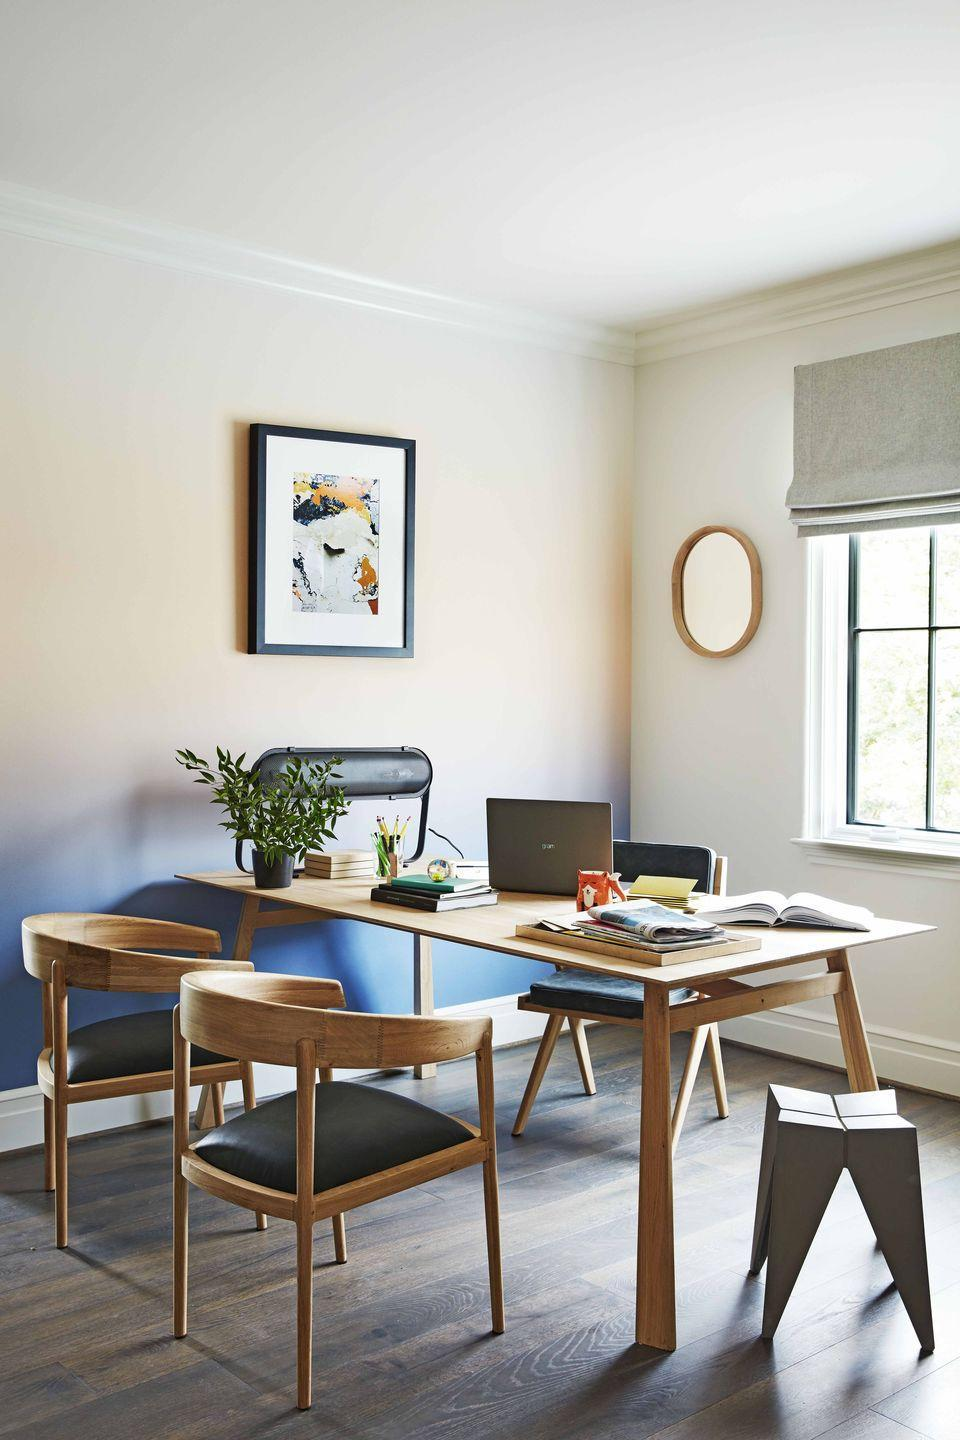 """<p>For our <a href=""""https://www.housebeautiful.com/design-inspiration/house-tours/a29402696/whole-home-2019/"""" rel=""""nofollow noopener"""" target=""""_blank"""" data-ylk=""""slk:2019 Whole Home"""" class=""""link rapid-noclick-resp"""">2019 Whole Home</a> in Nashville, <a href=""""https://www.housebeautiful.com/lifestyle/a26016246/dani-arps-interior-designer/"""" rel=""""nofollow noopener"""" target=""""_blank"""" data-ylk=""""slk:Dani Arps"""" class=""""link rapid-noclick-resp"""">Dani Arps</a>—a go-to office designer for New York startups—created an airy, clutter-free space that lacked one notable feature: a desk. """"Most files are stored digitally, so bulky office furniture with tons of storage isn't necessary,"""" said Arps, who instead opted for a large, streamlined work table from Industry West.</p>"""